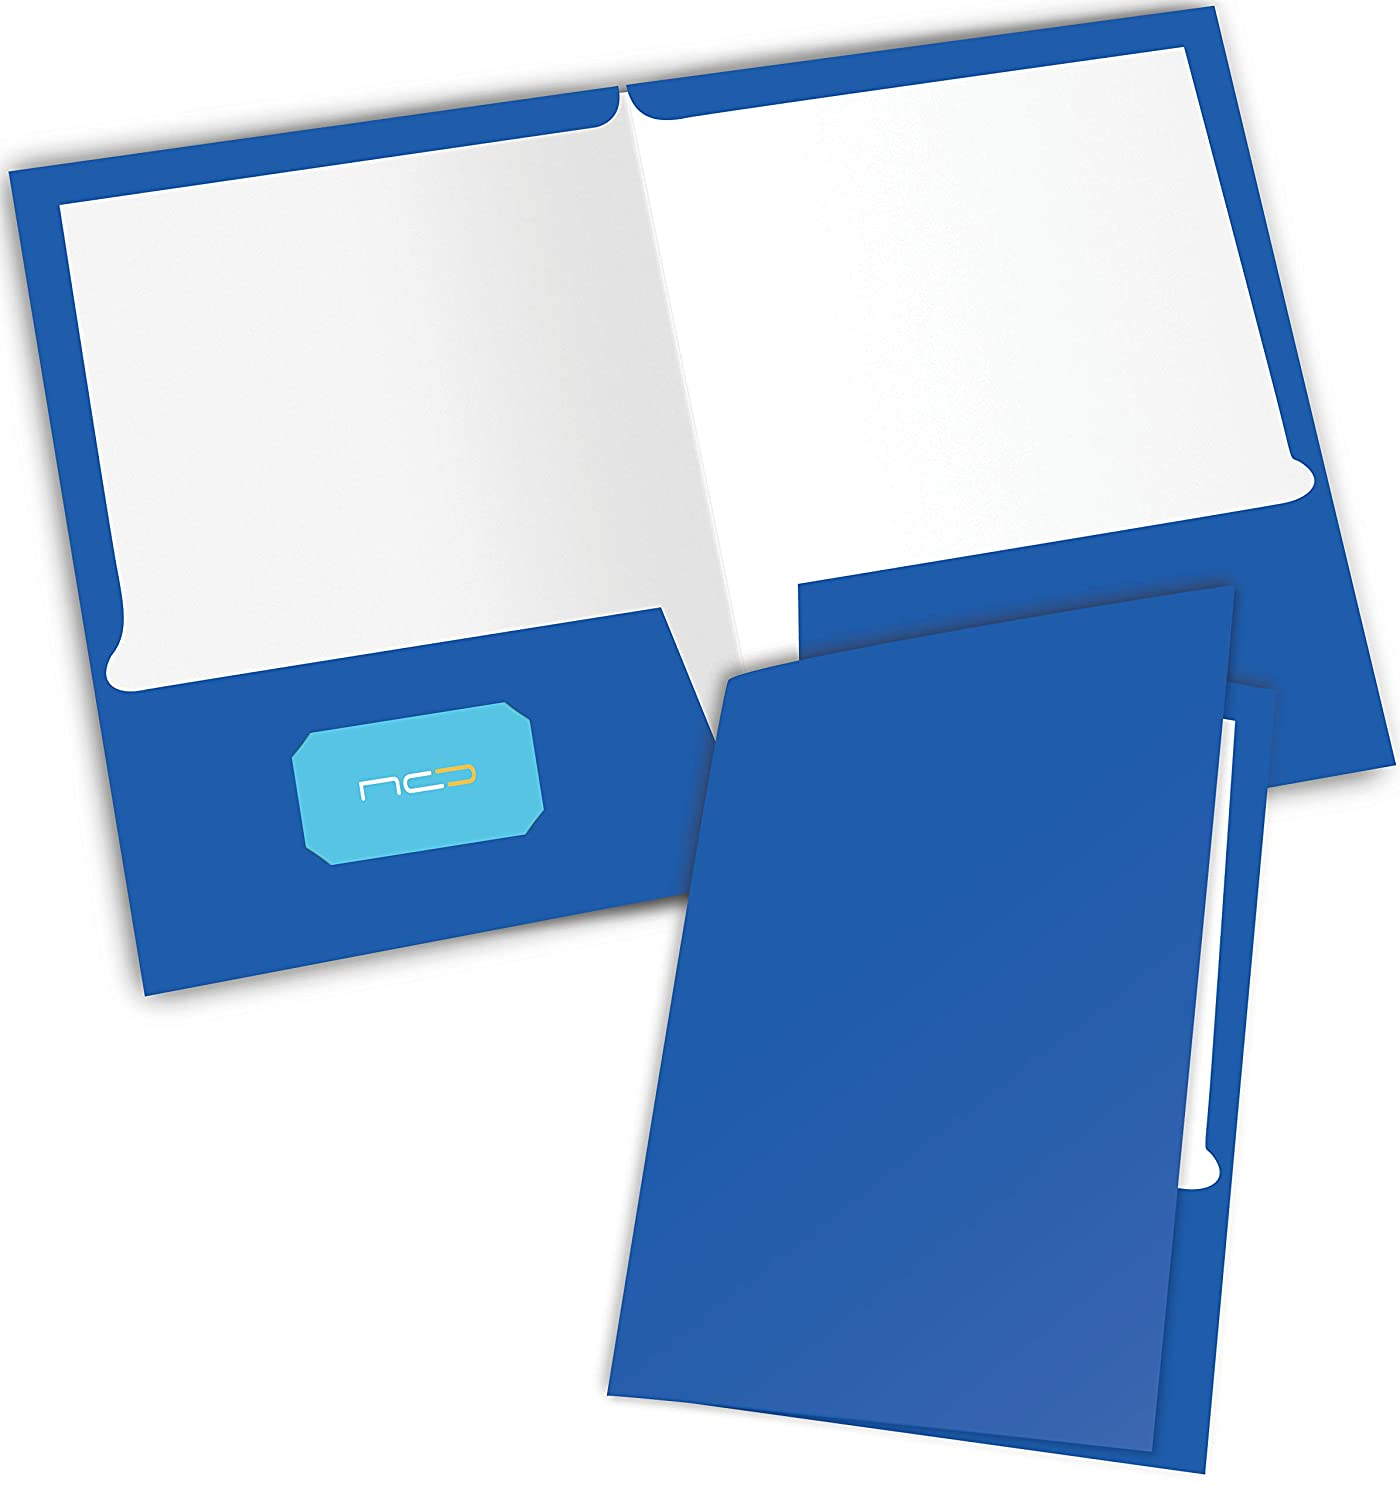 NEW GENERATION Ivory 2 Pocket Folders,Heavy Duty Glossy Laminated Paper Presentation Folders,Folder with a die-Cut Business Card Holder,Great for School,Home or Office organizing,6 Pack Folders